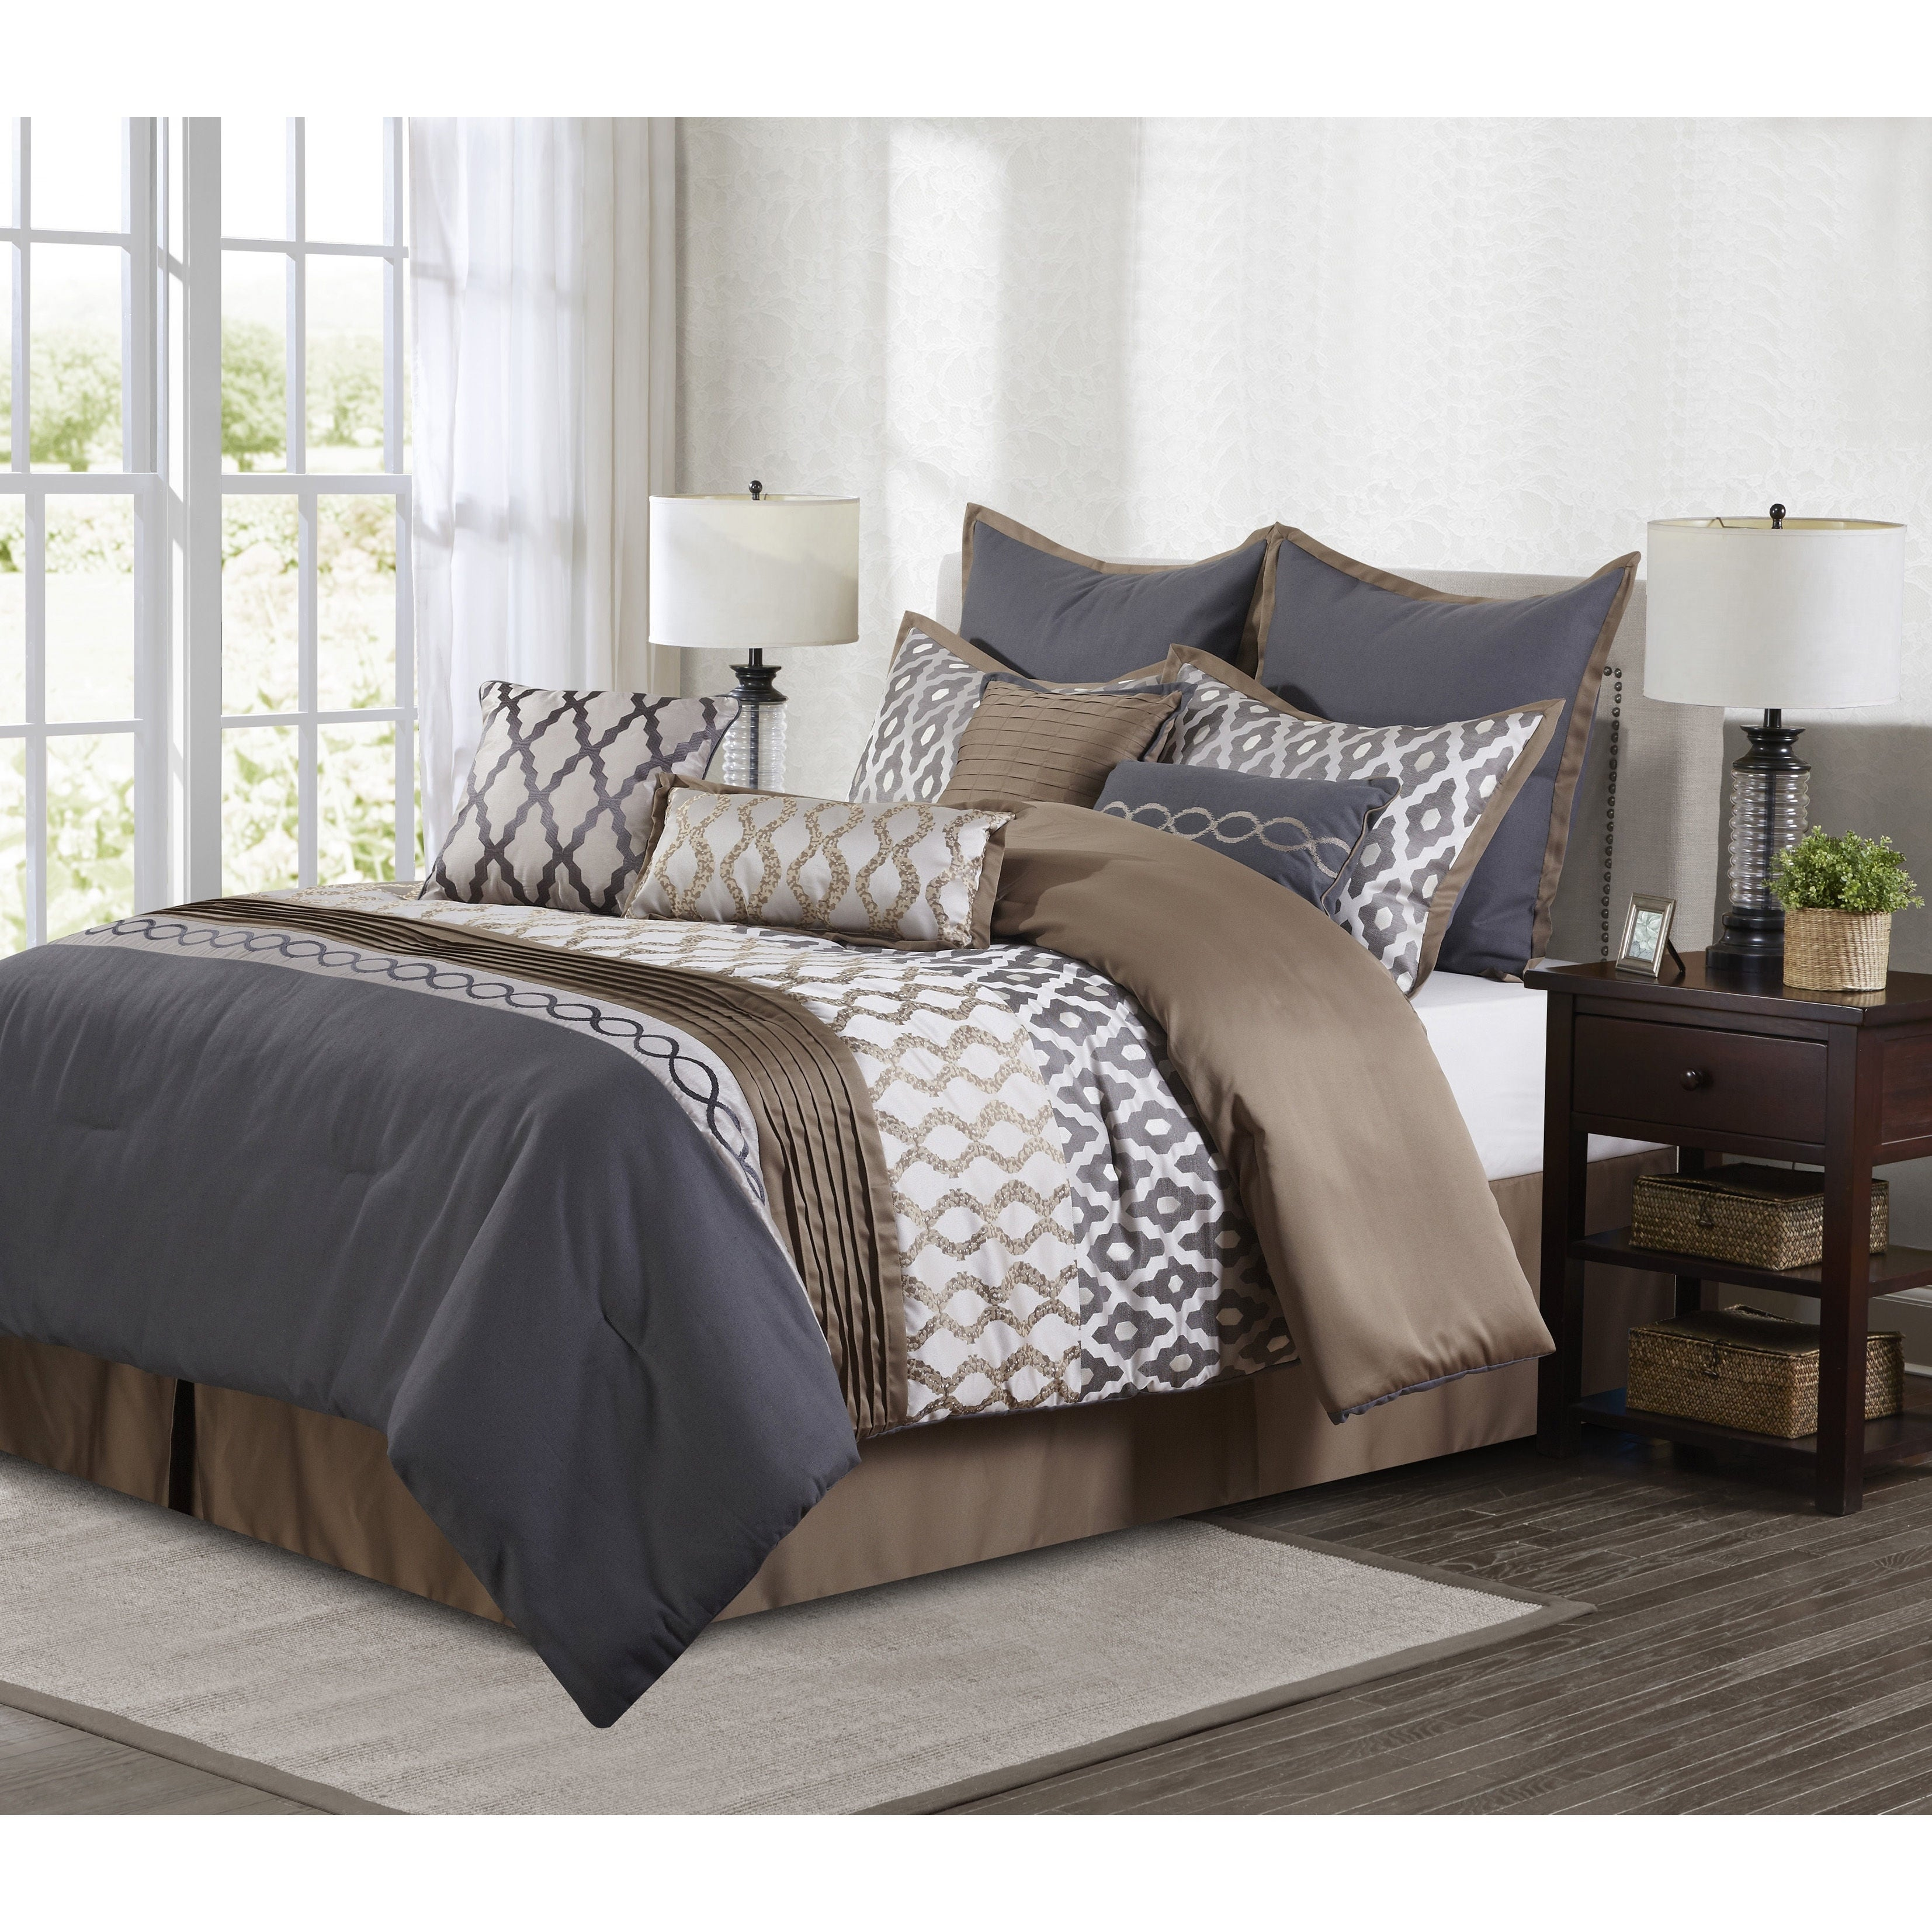 Nanshing Caval Grey And Brown 10 Piece Polyester Comforter Set Overstock 12330162